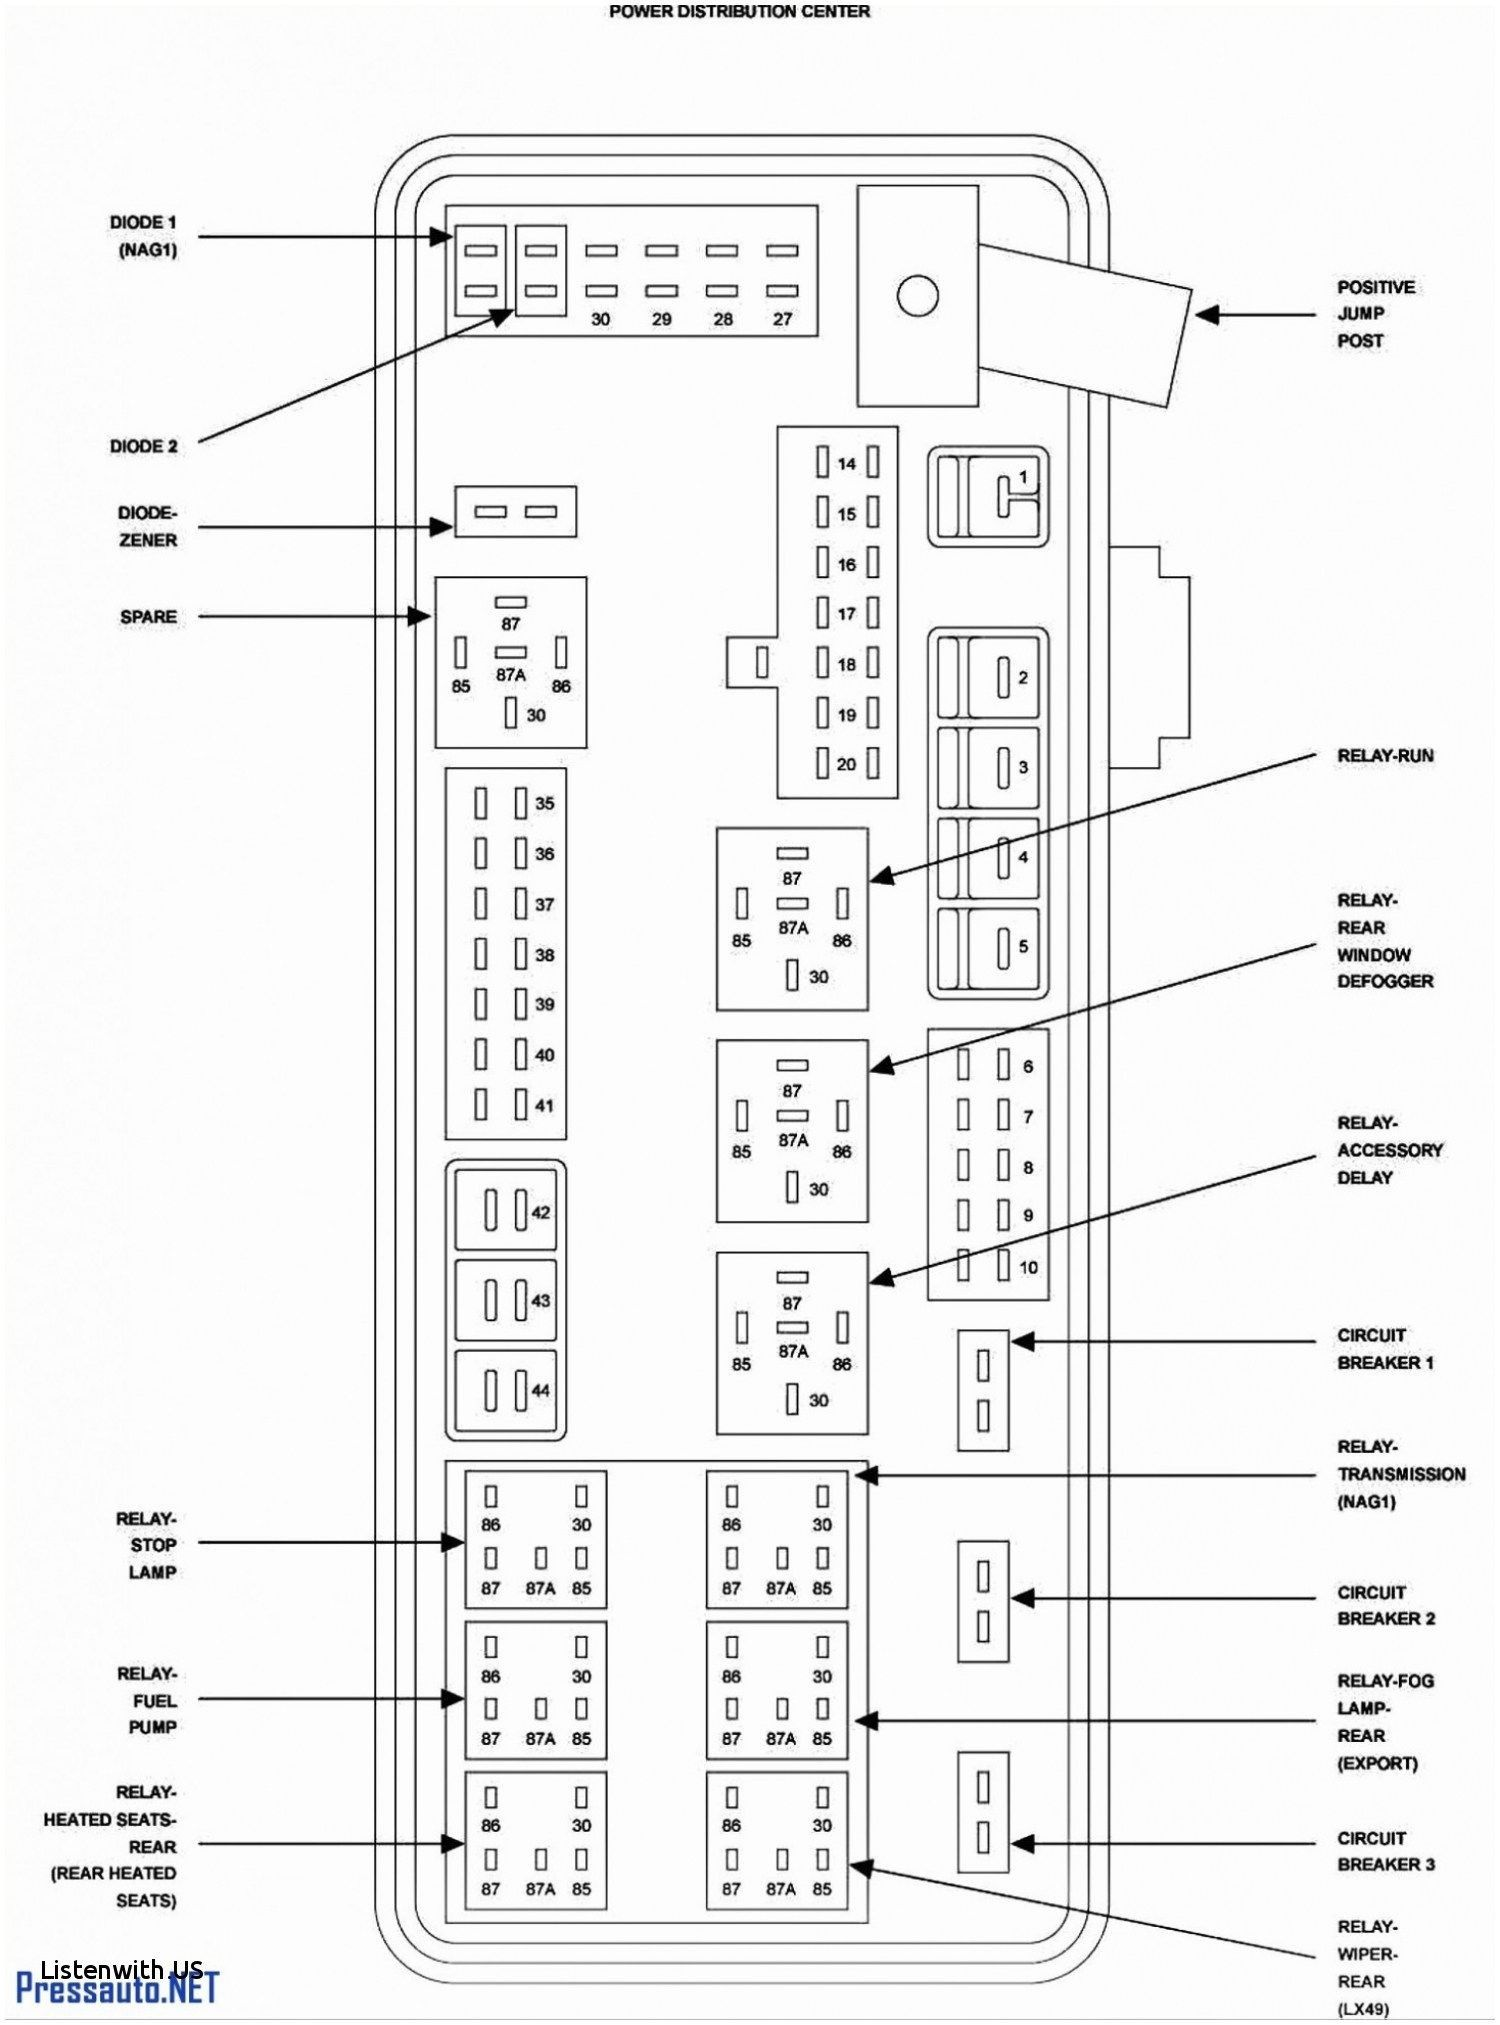 Unique 94 Jeep Grand Cherokee Stereo Wiring Diagram Dodge Ram 1500 Electrical Circuit Diagram Diagram